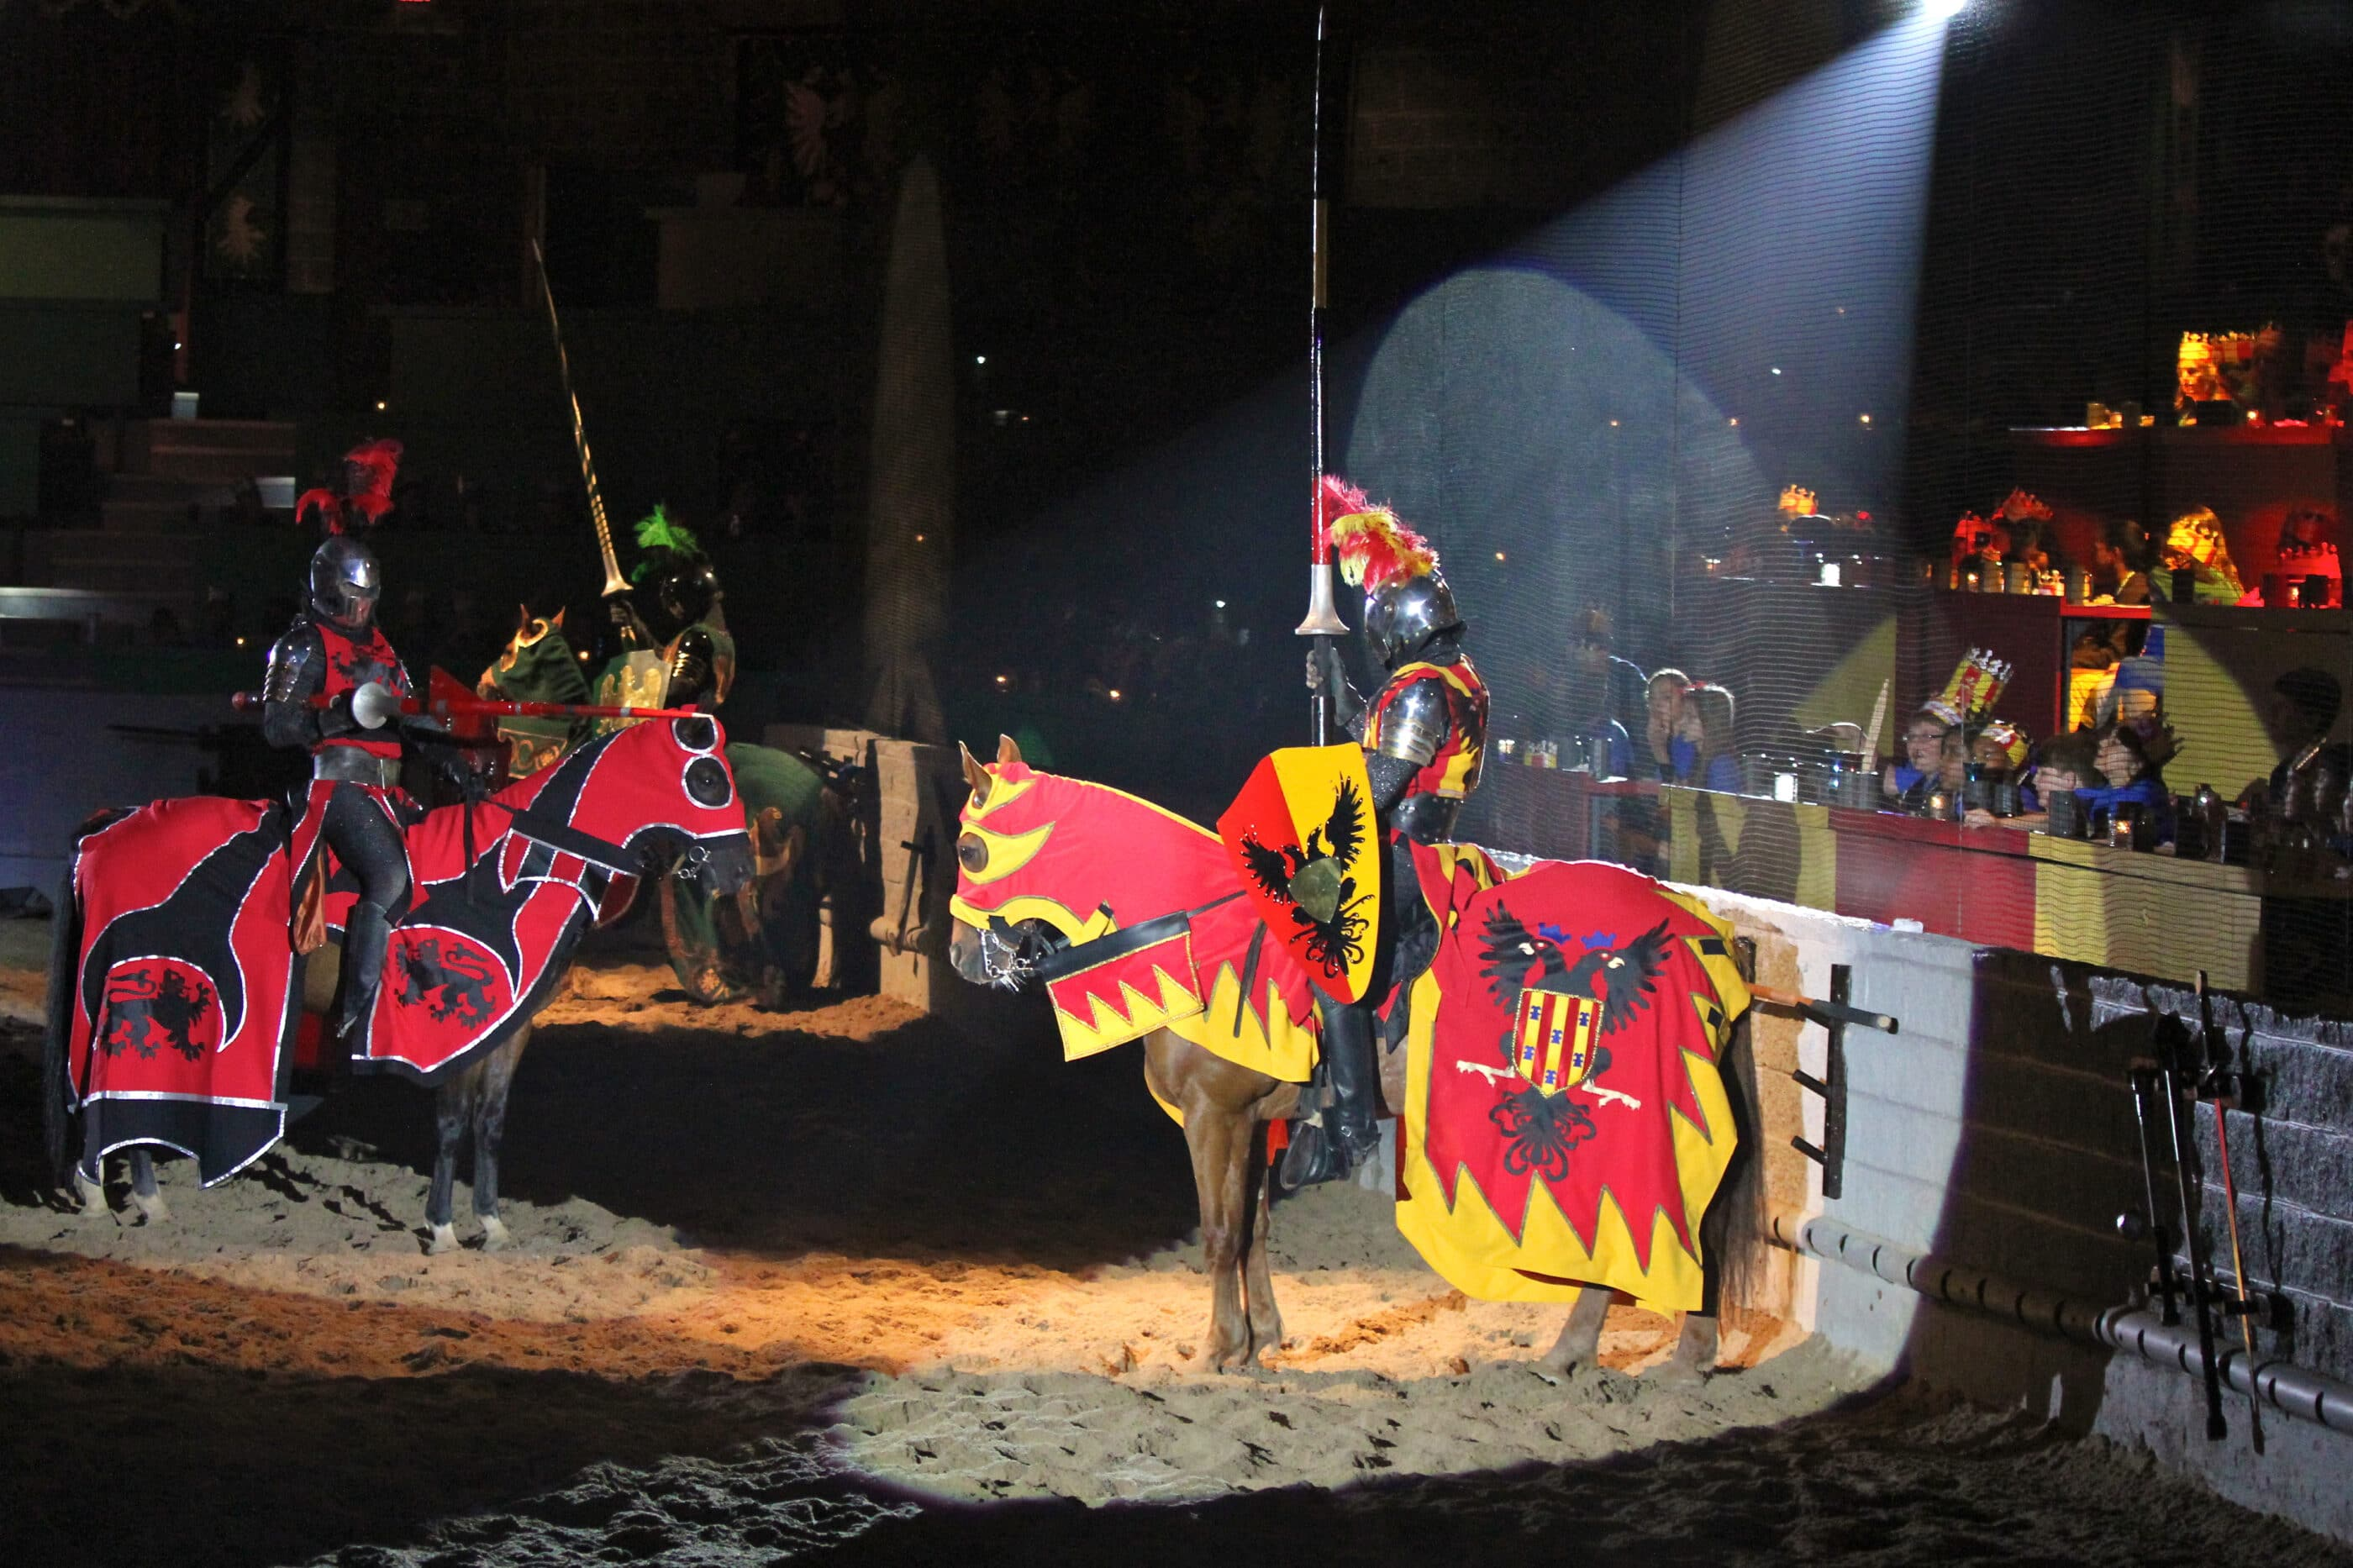 Knights on horses face each other in the arena as diners watch at Medieval Times.